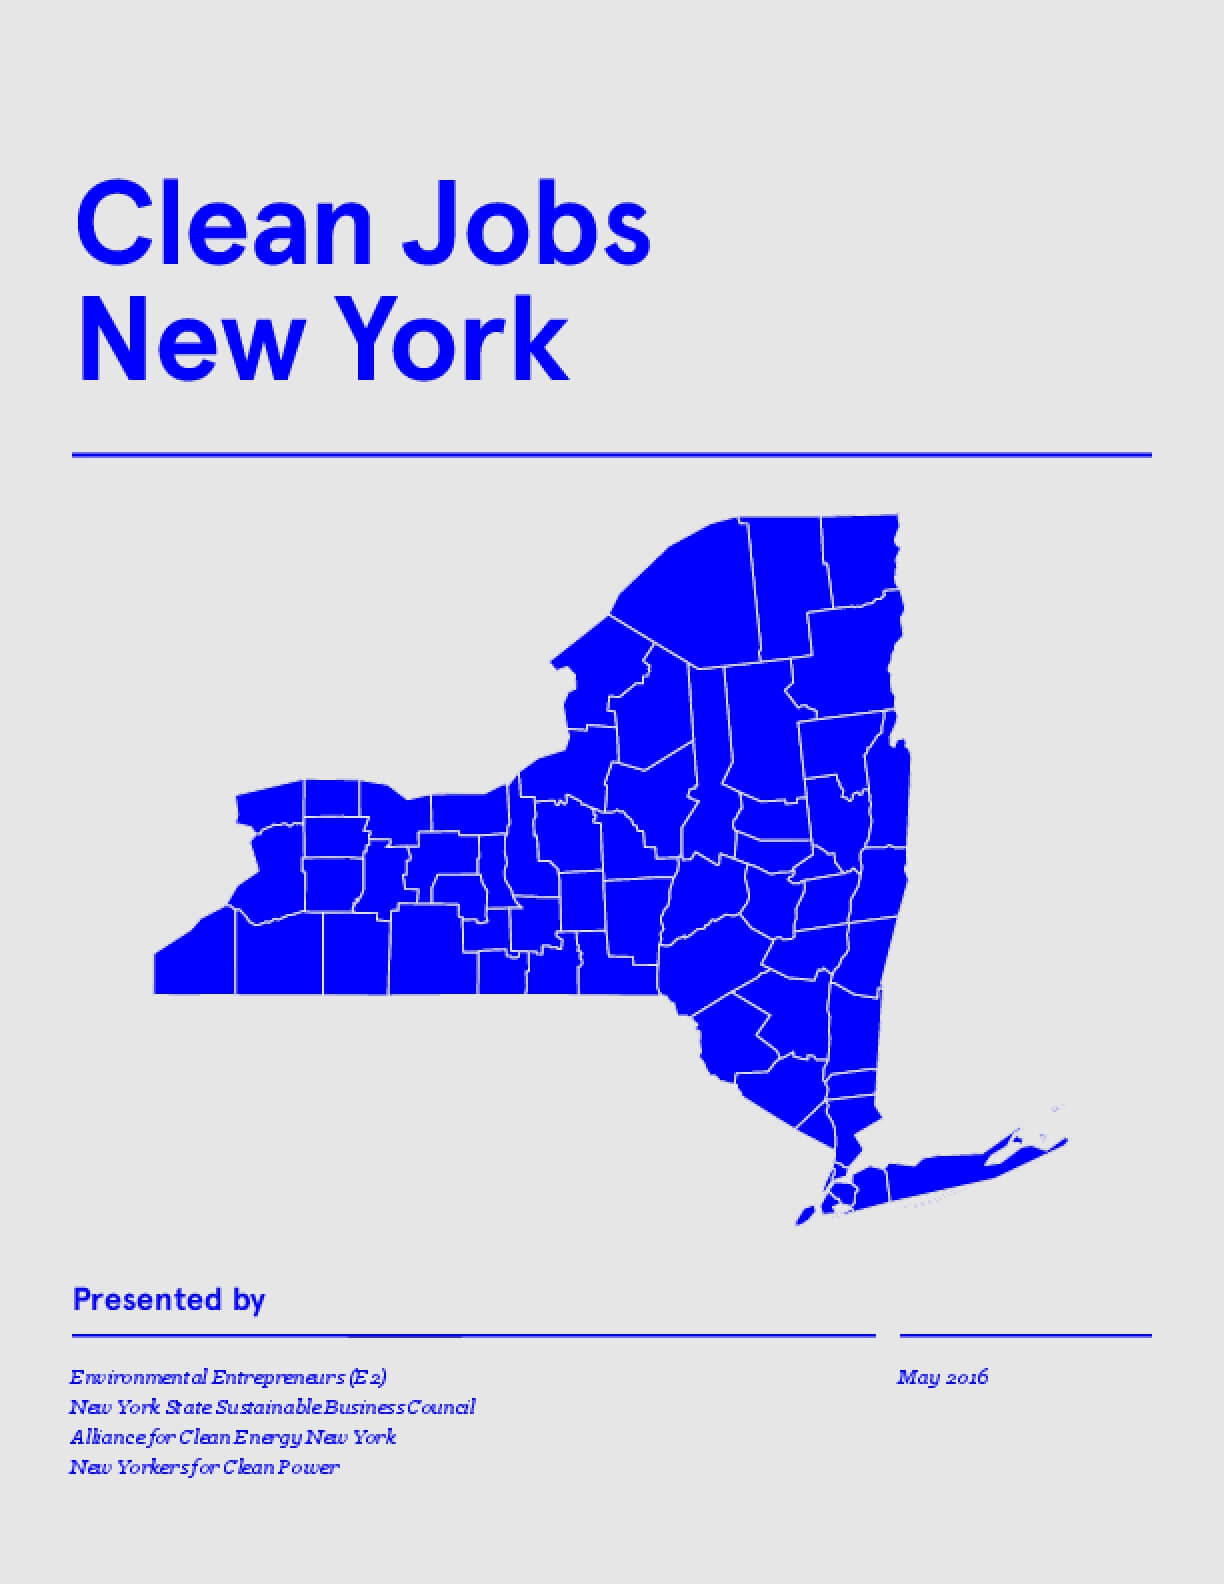 Clean Jobs New York